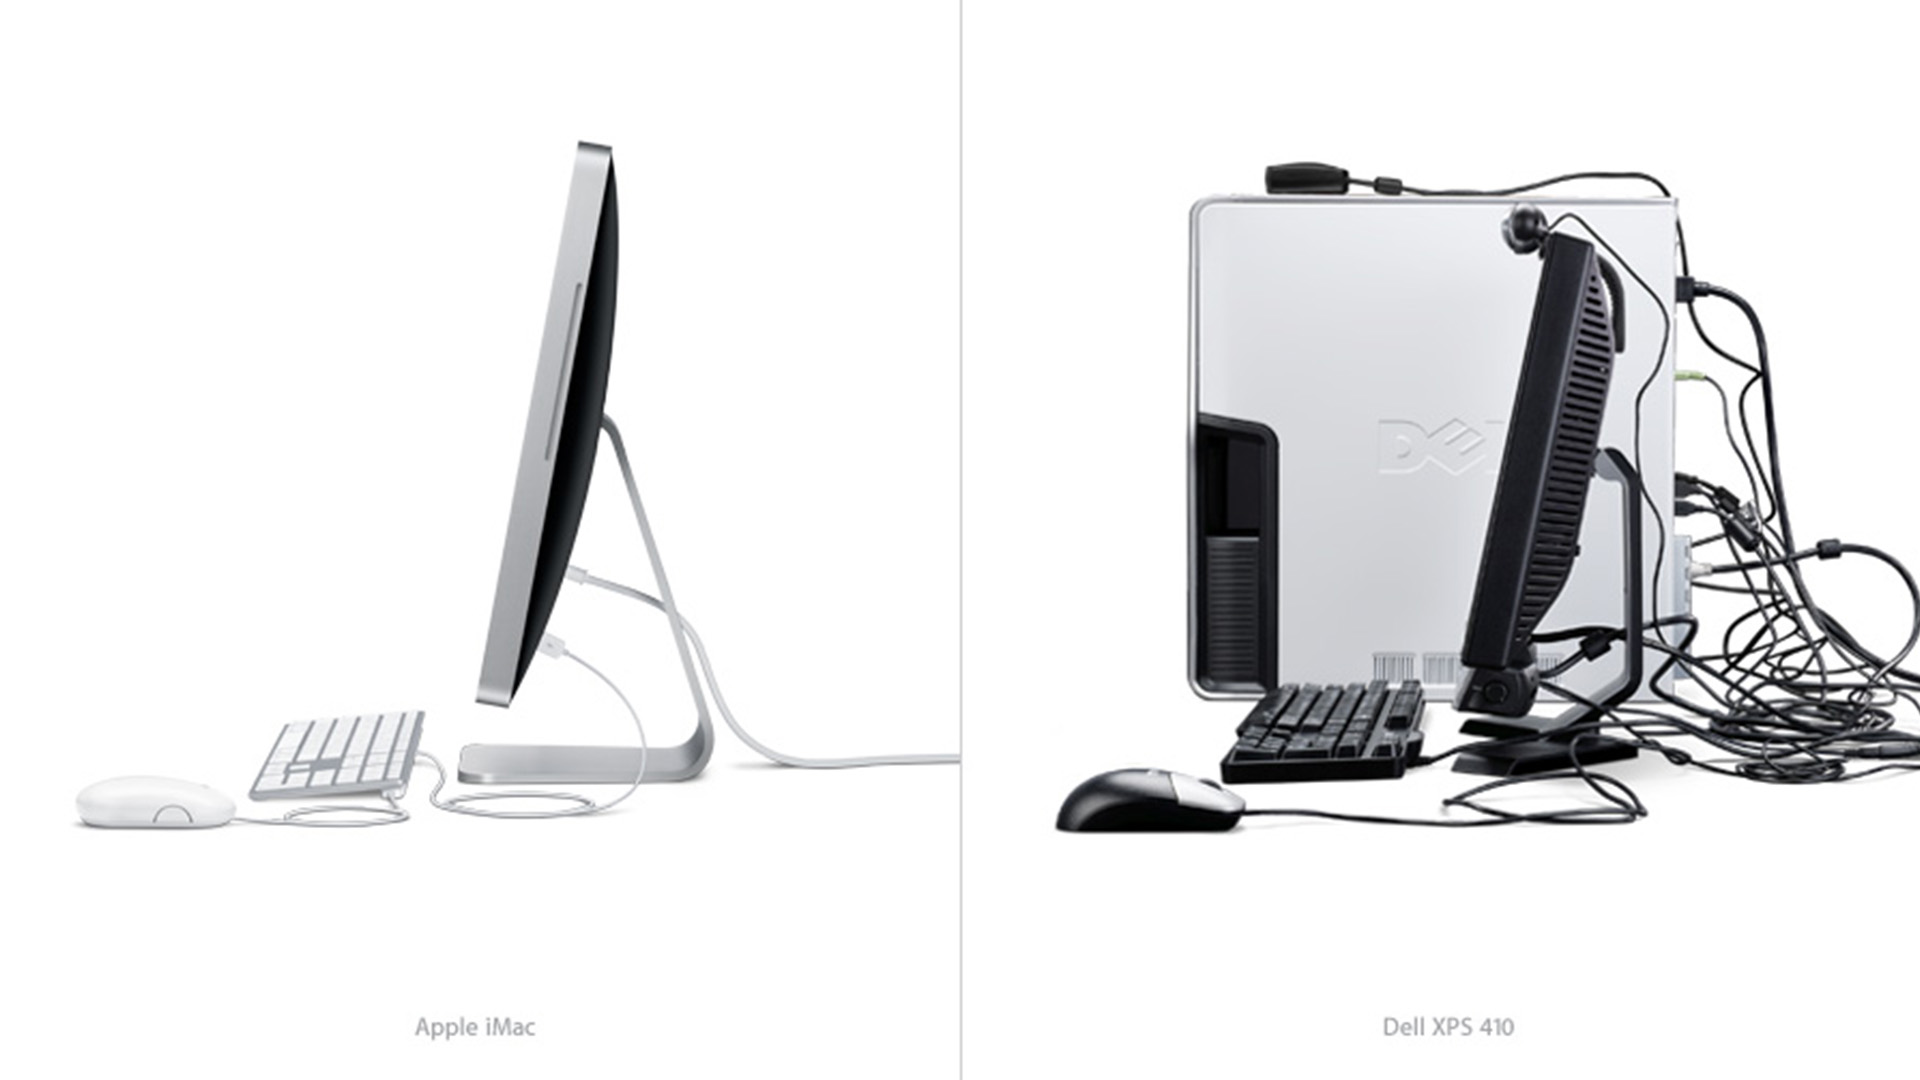 20 years of iMac: A story of relentless design iteration